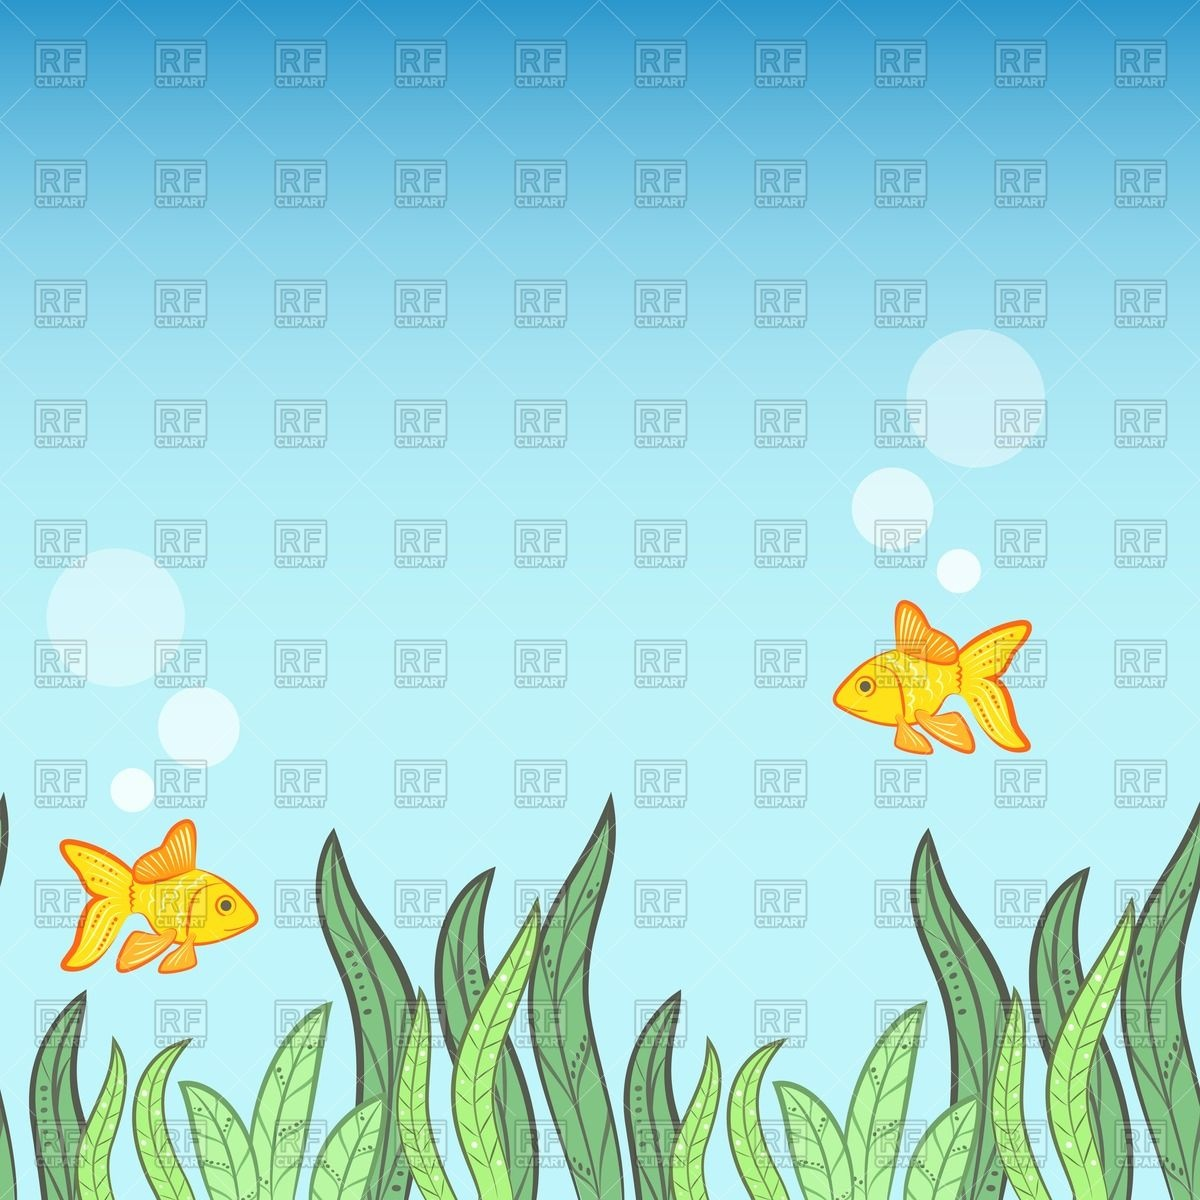 Fish Background Clipart.